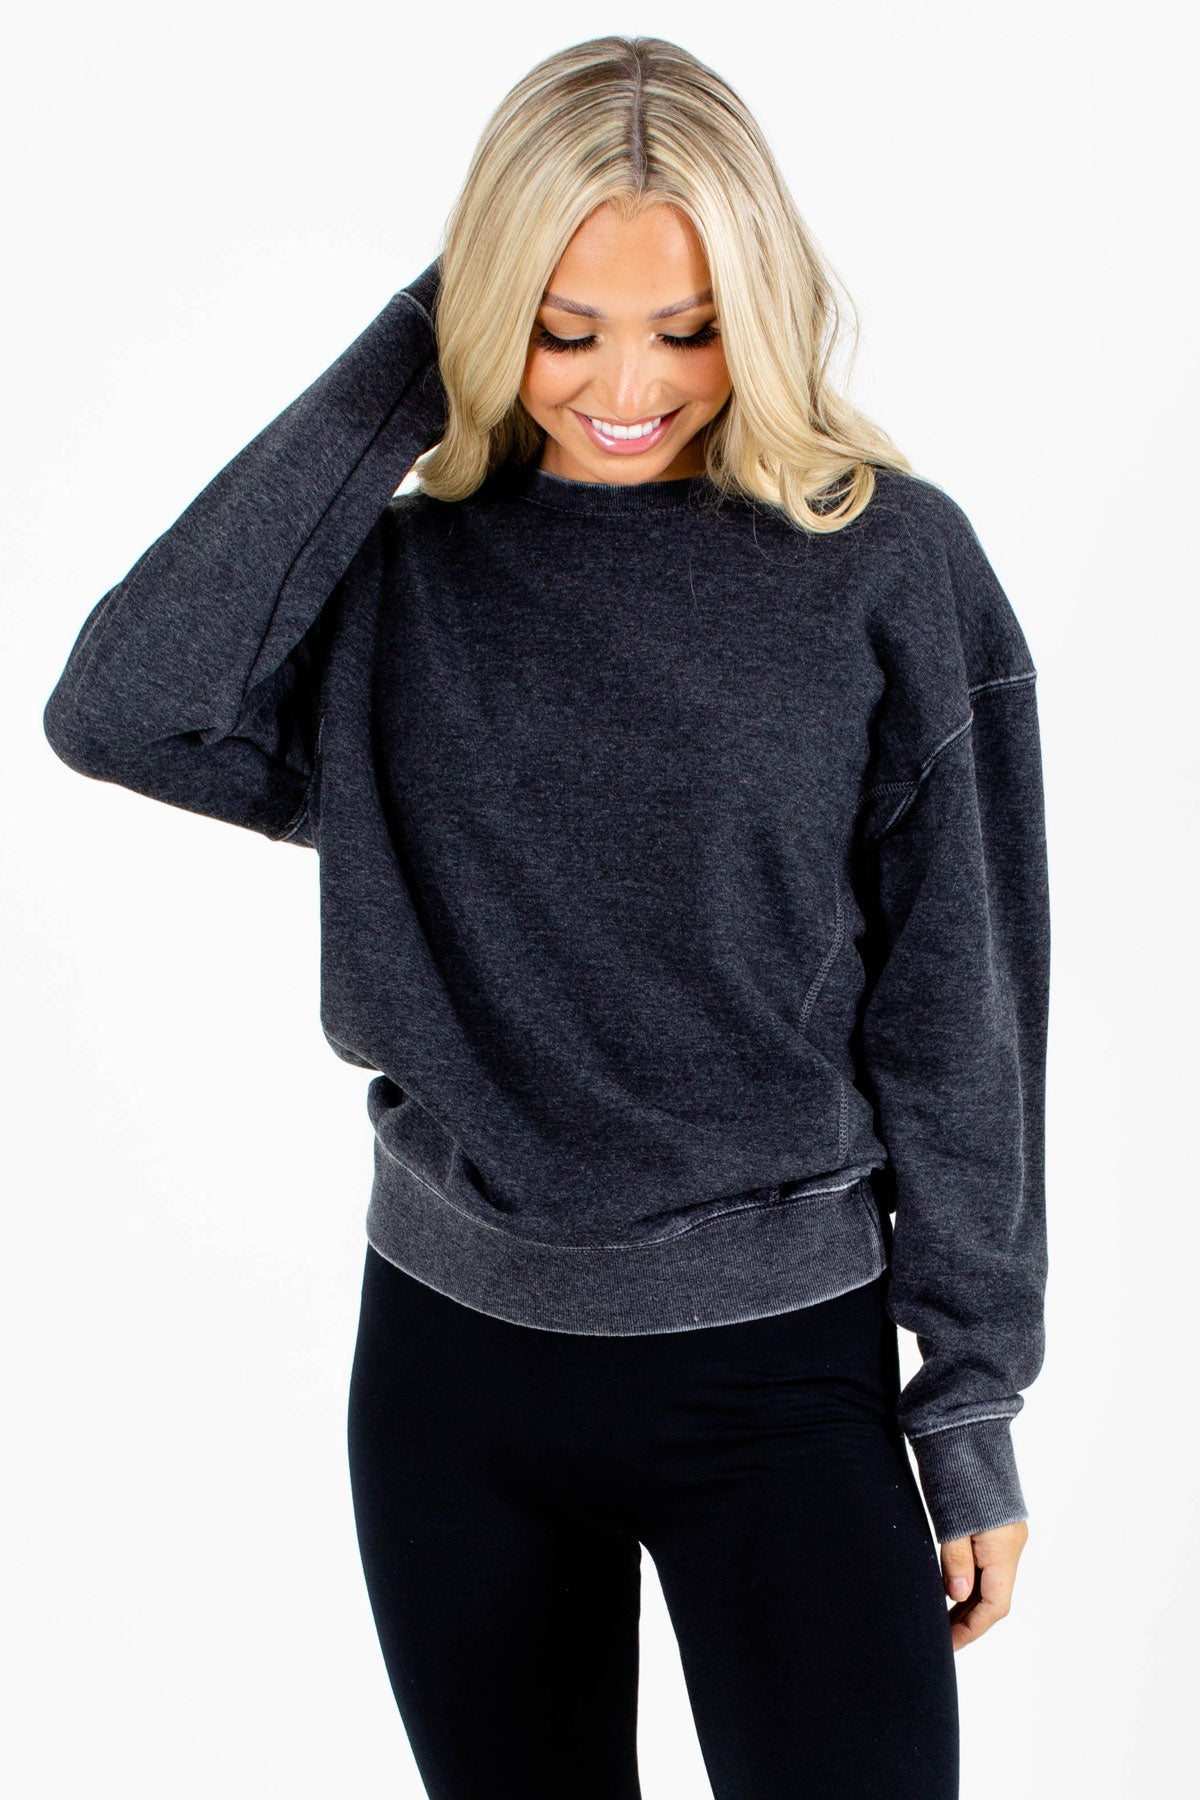 Charcoal Gray Fleece-Lined Boutique Pullovers for Women